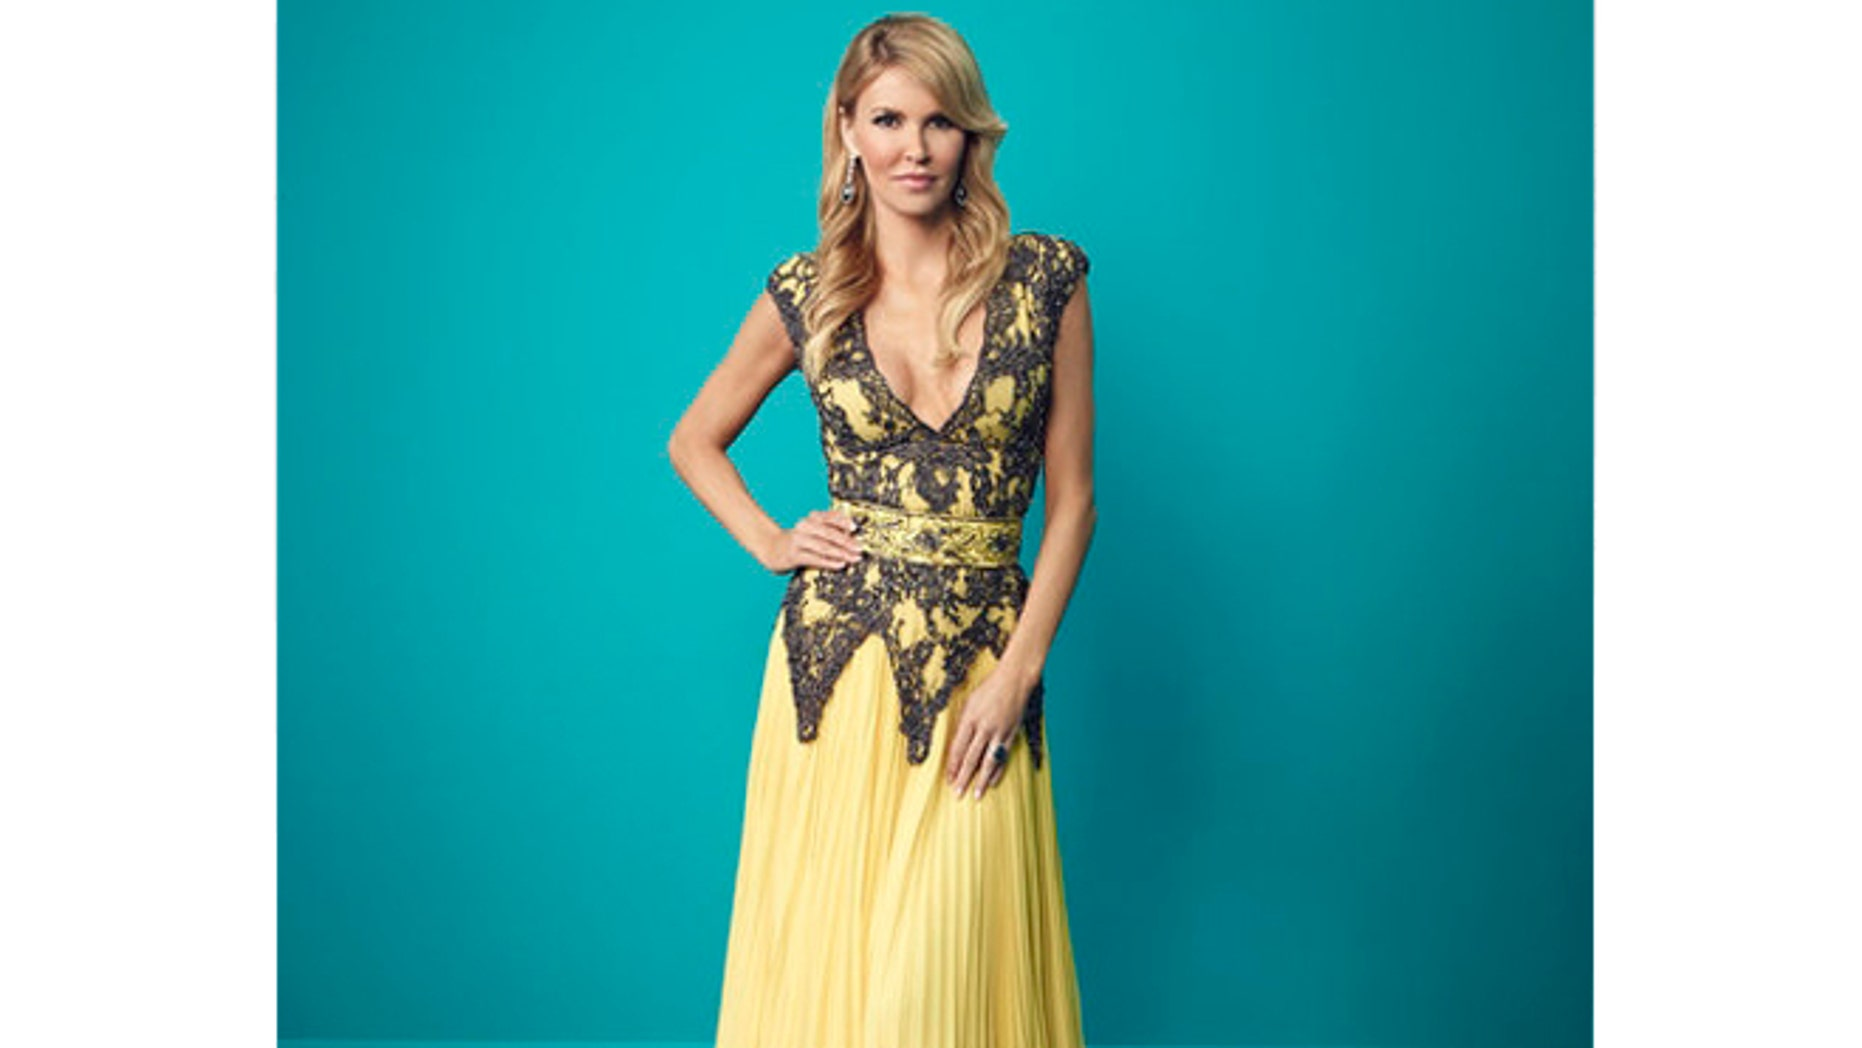 """Brandi Glanville is seen in a promotional photo for """"The Real Housewives of Beverly Hills."""" (Photo by: Joe Pugliese/Bravo)"""